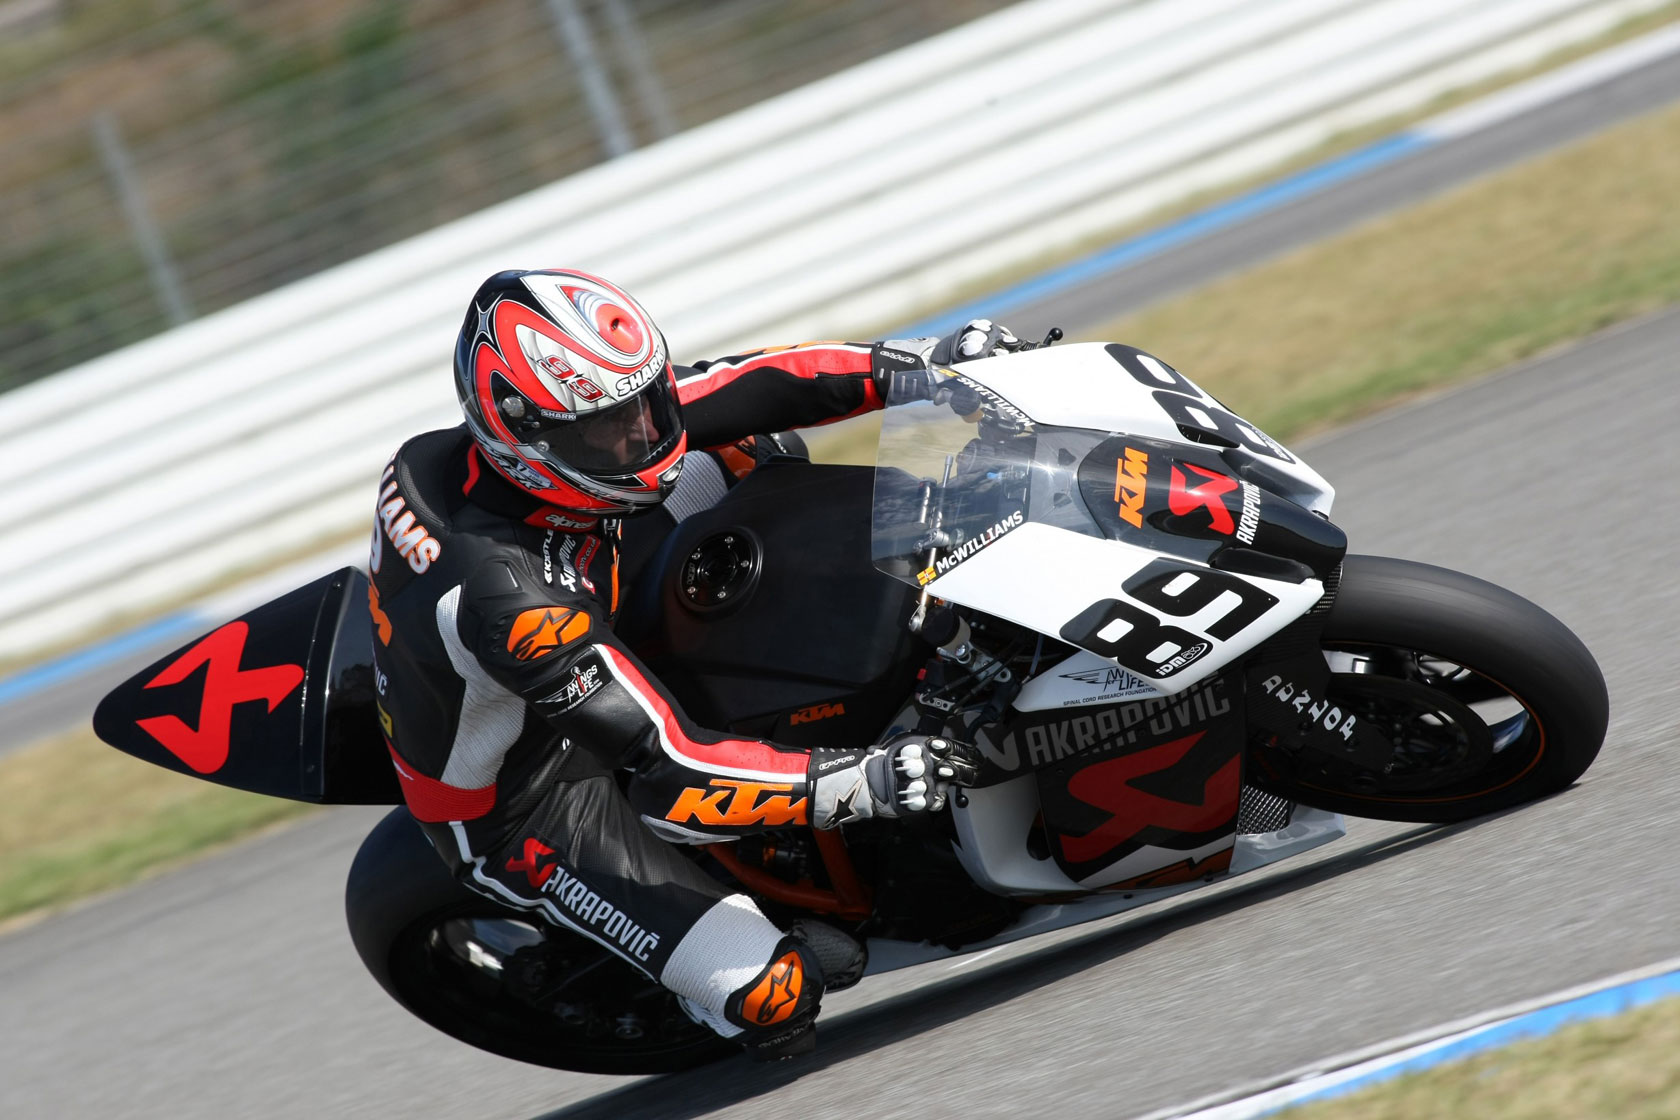 2010 KTM 1190 RC8 R Red Bull Limited Edition #6